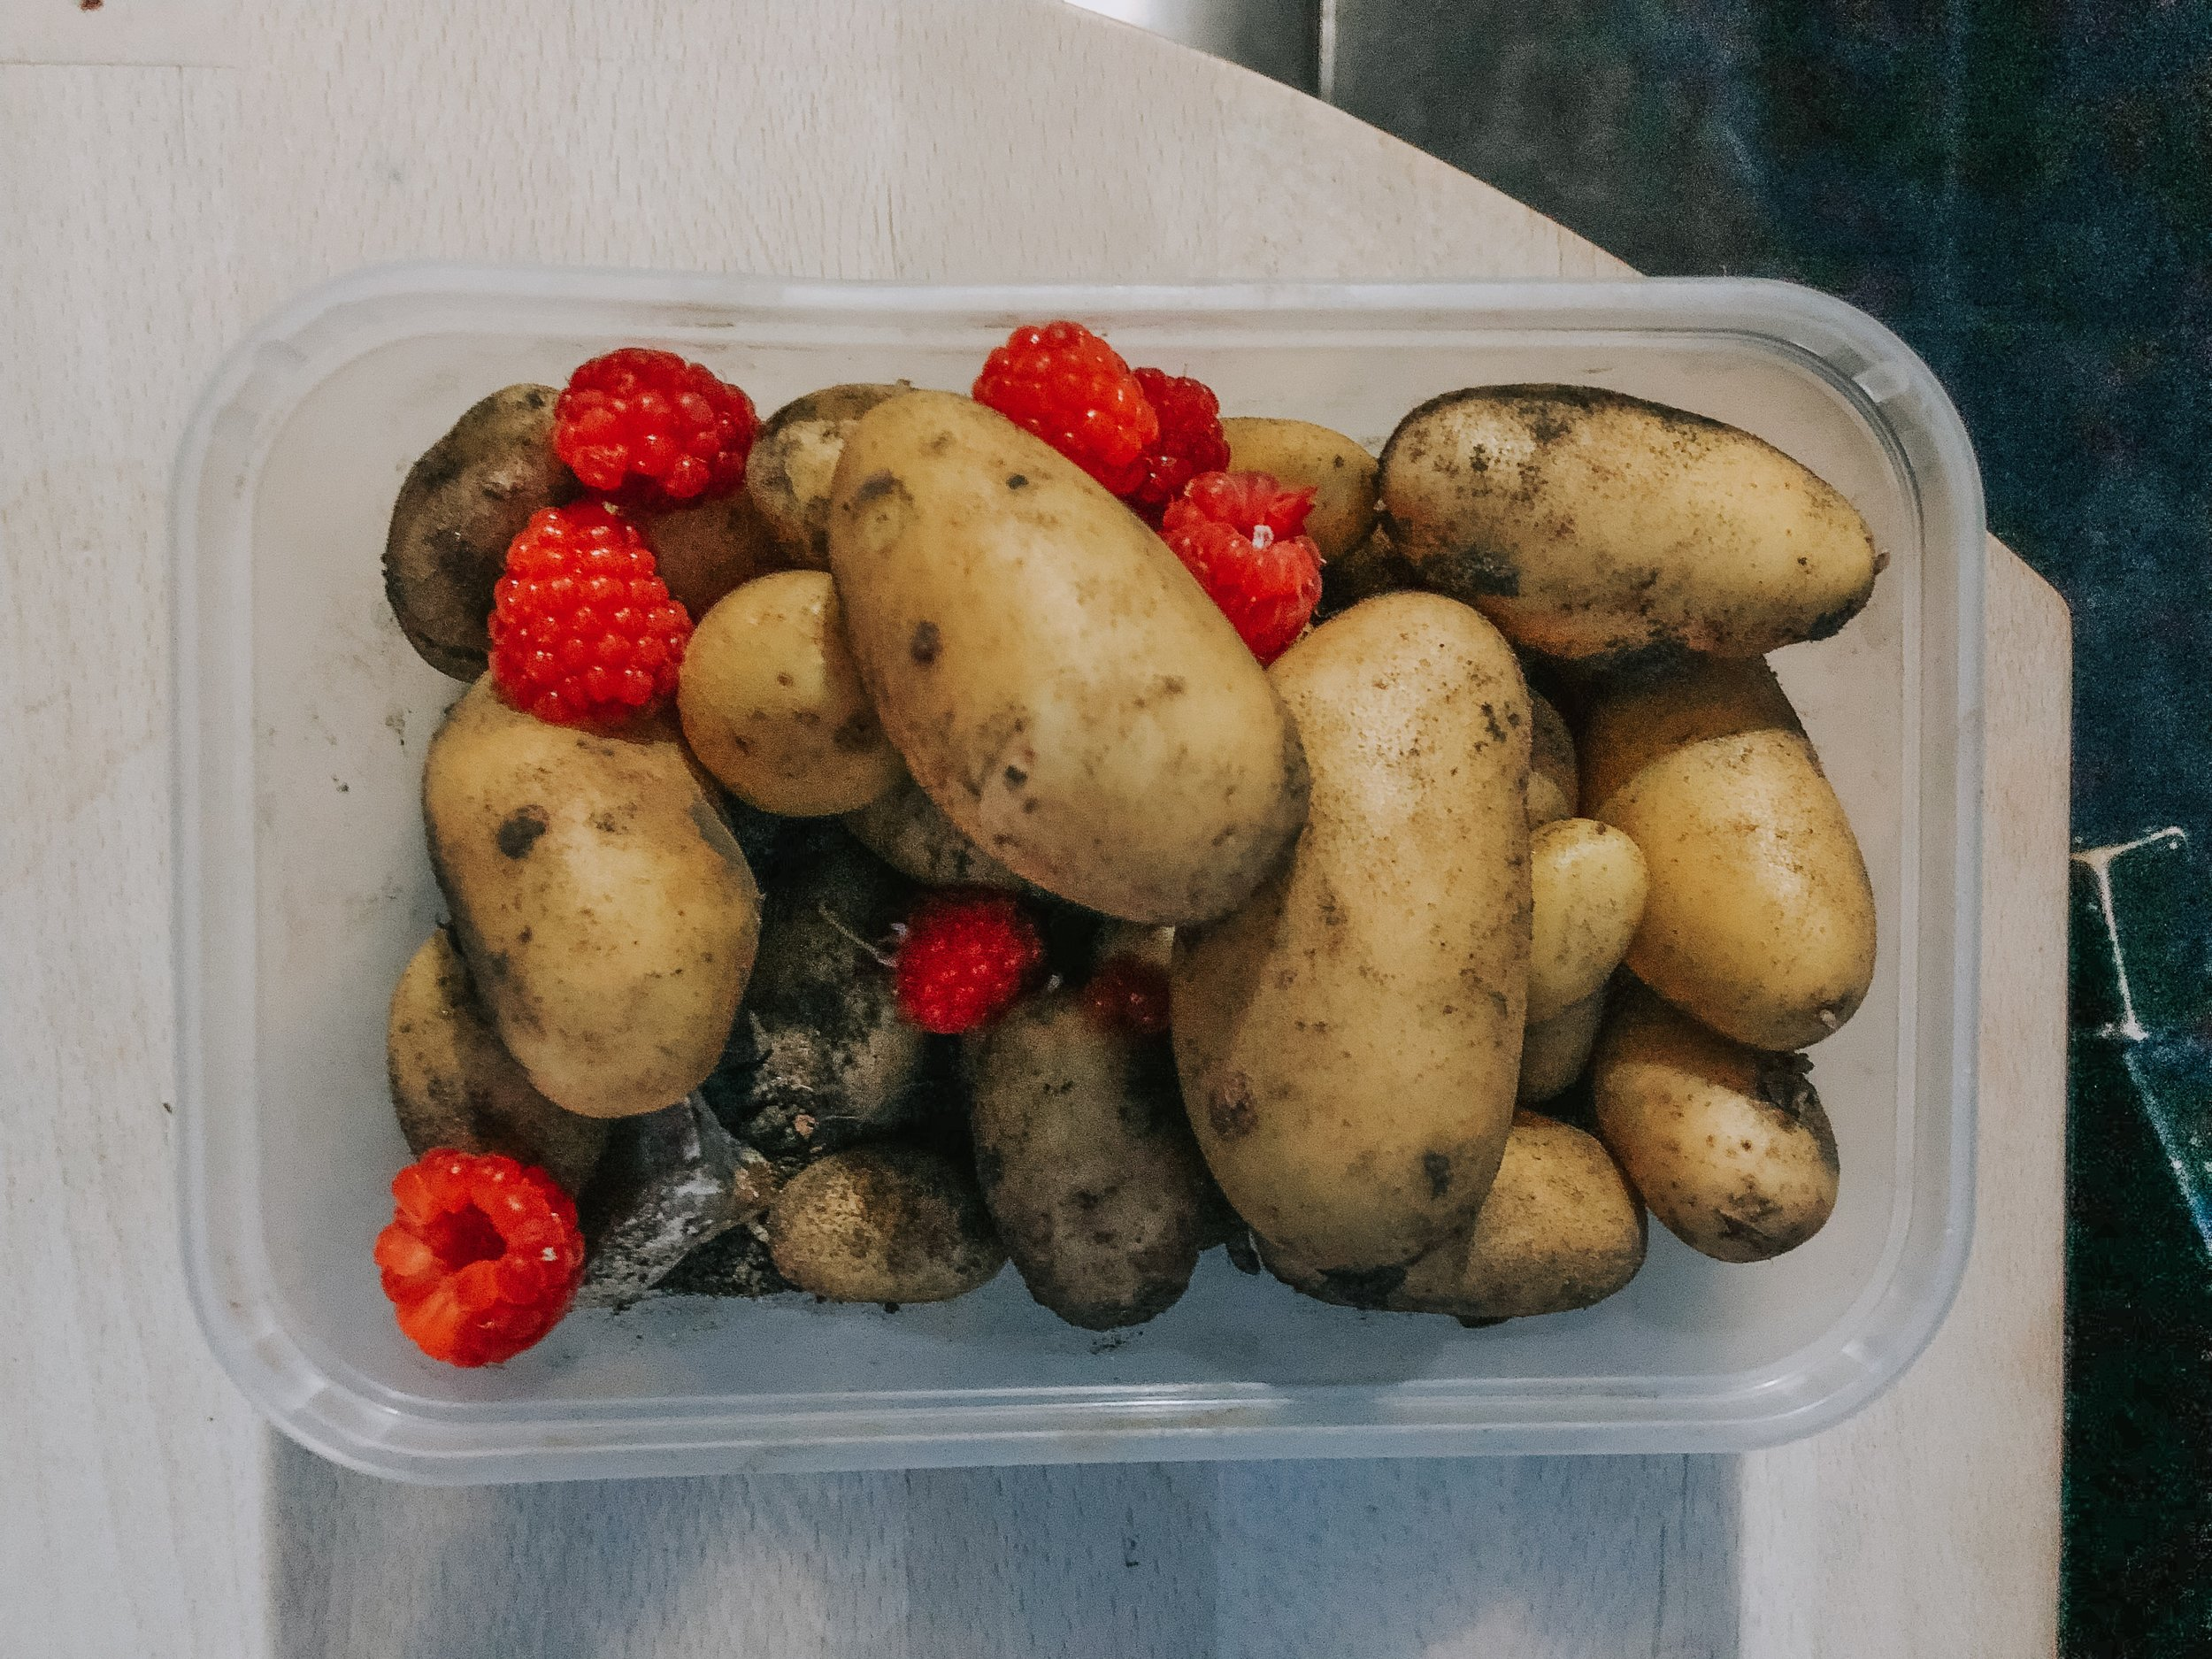 a potato crop from one potato dig today (and a few raspberries)